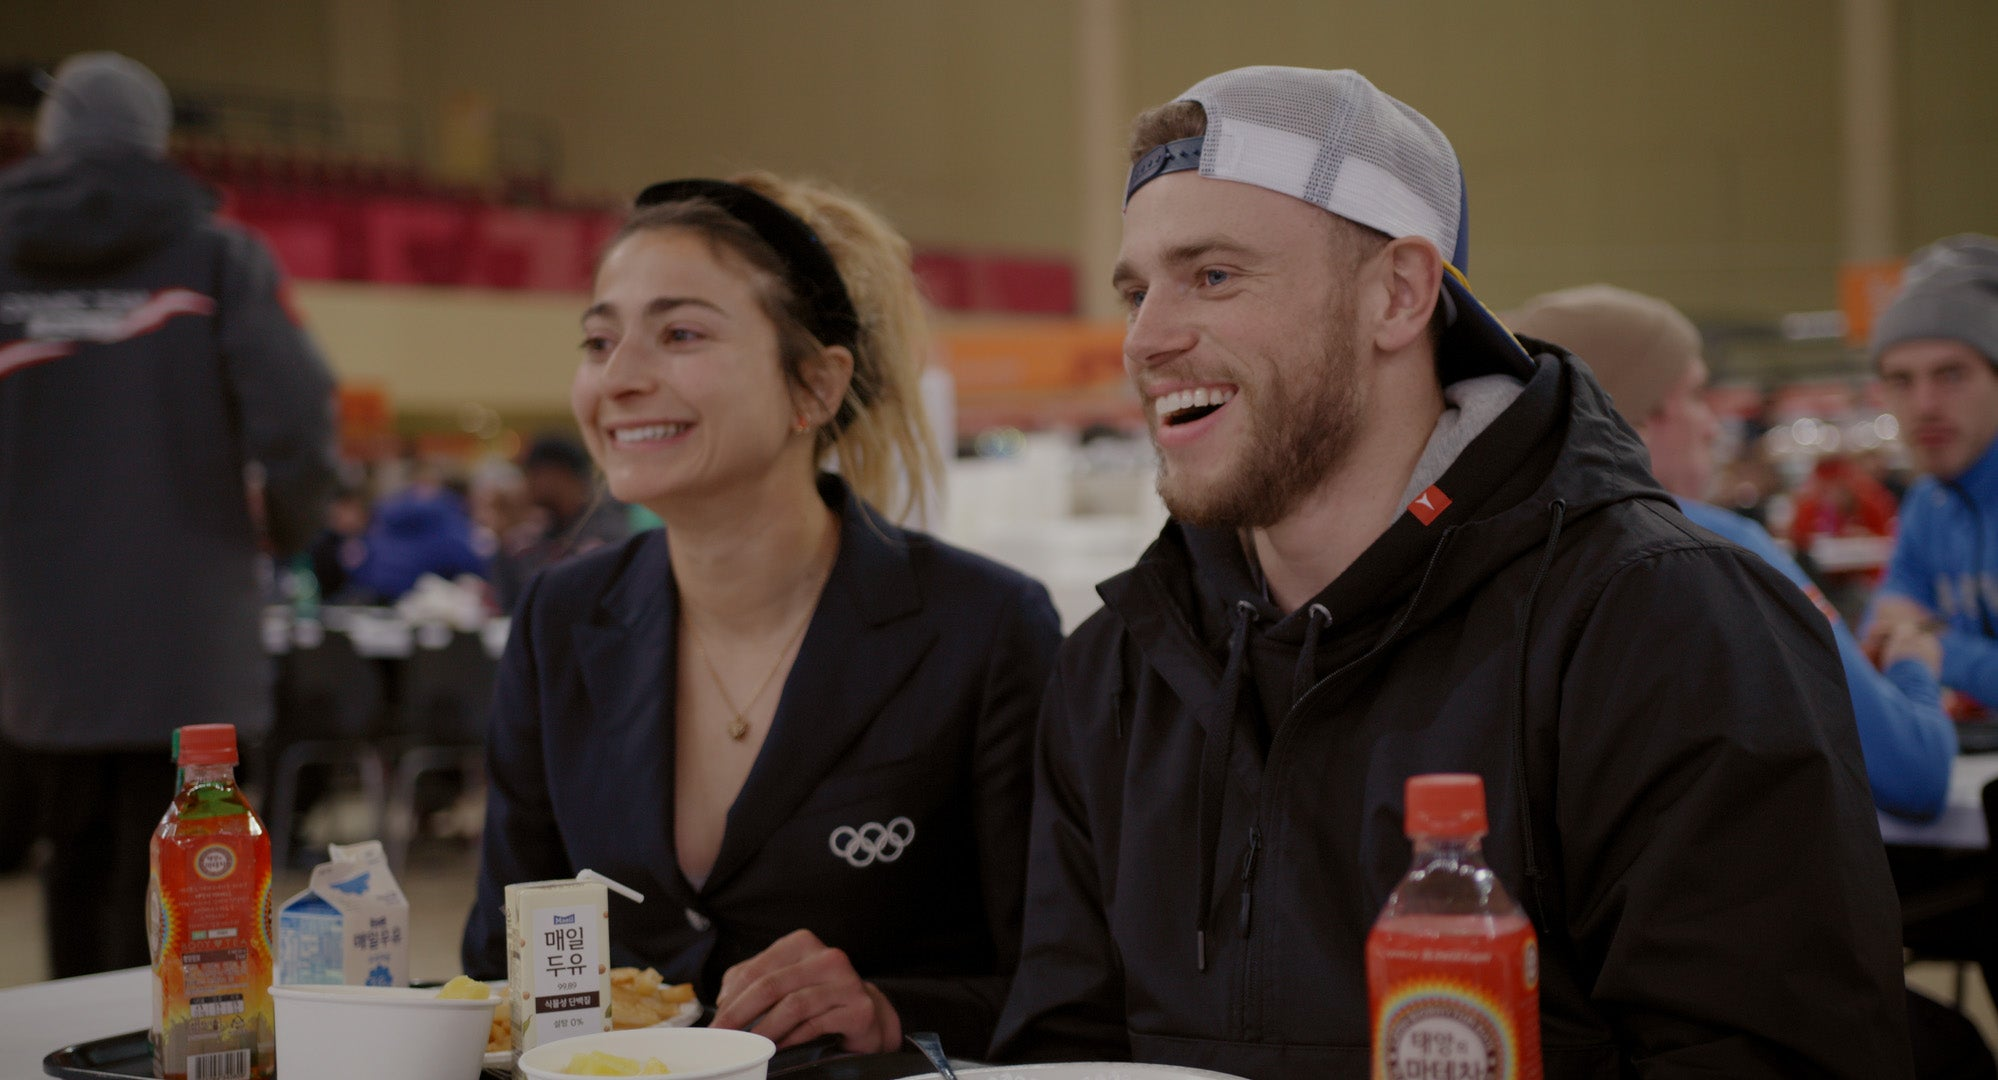 Alexi Pappas and Gus Kenworthy